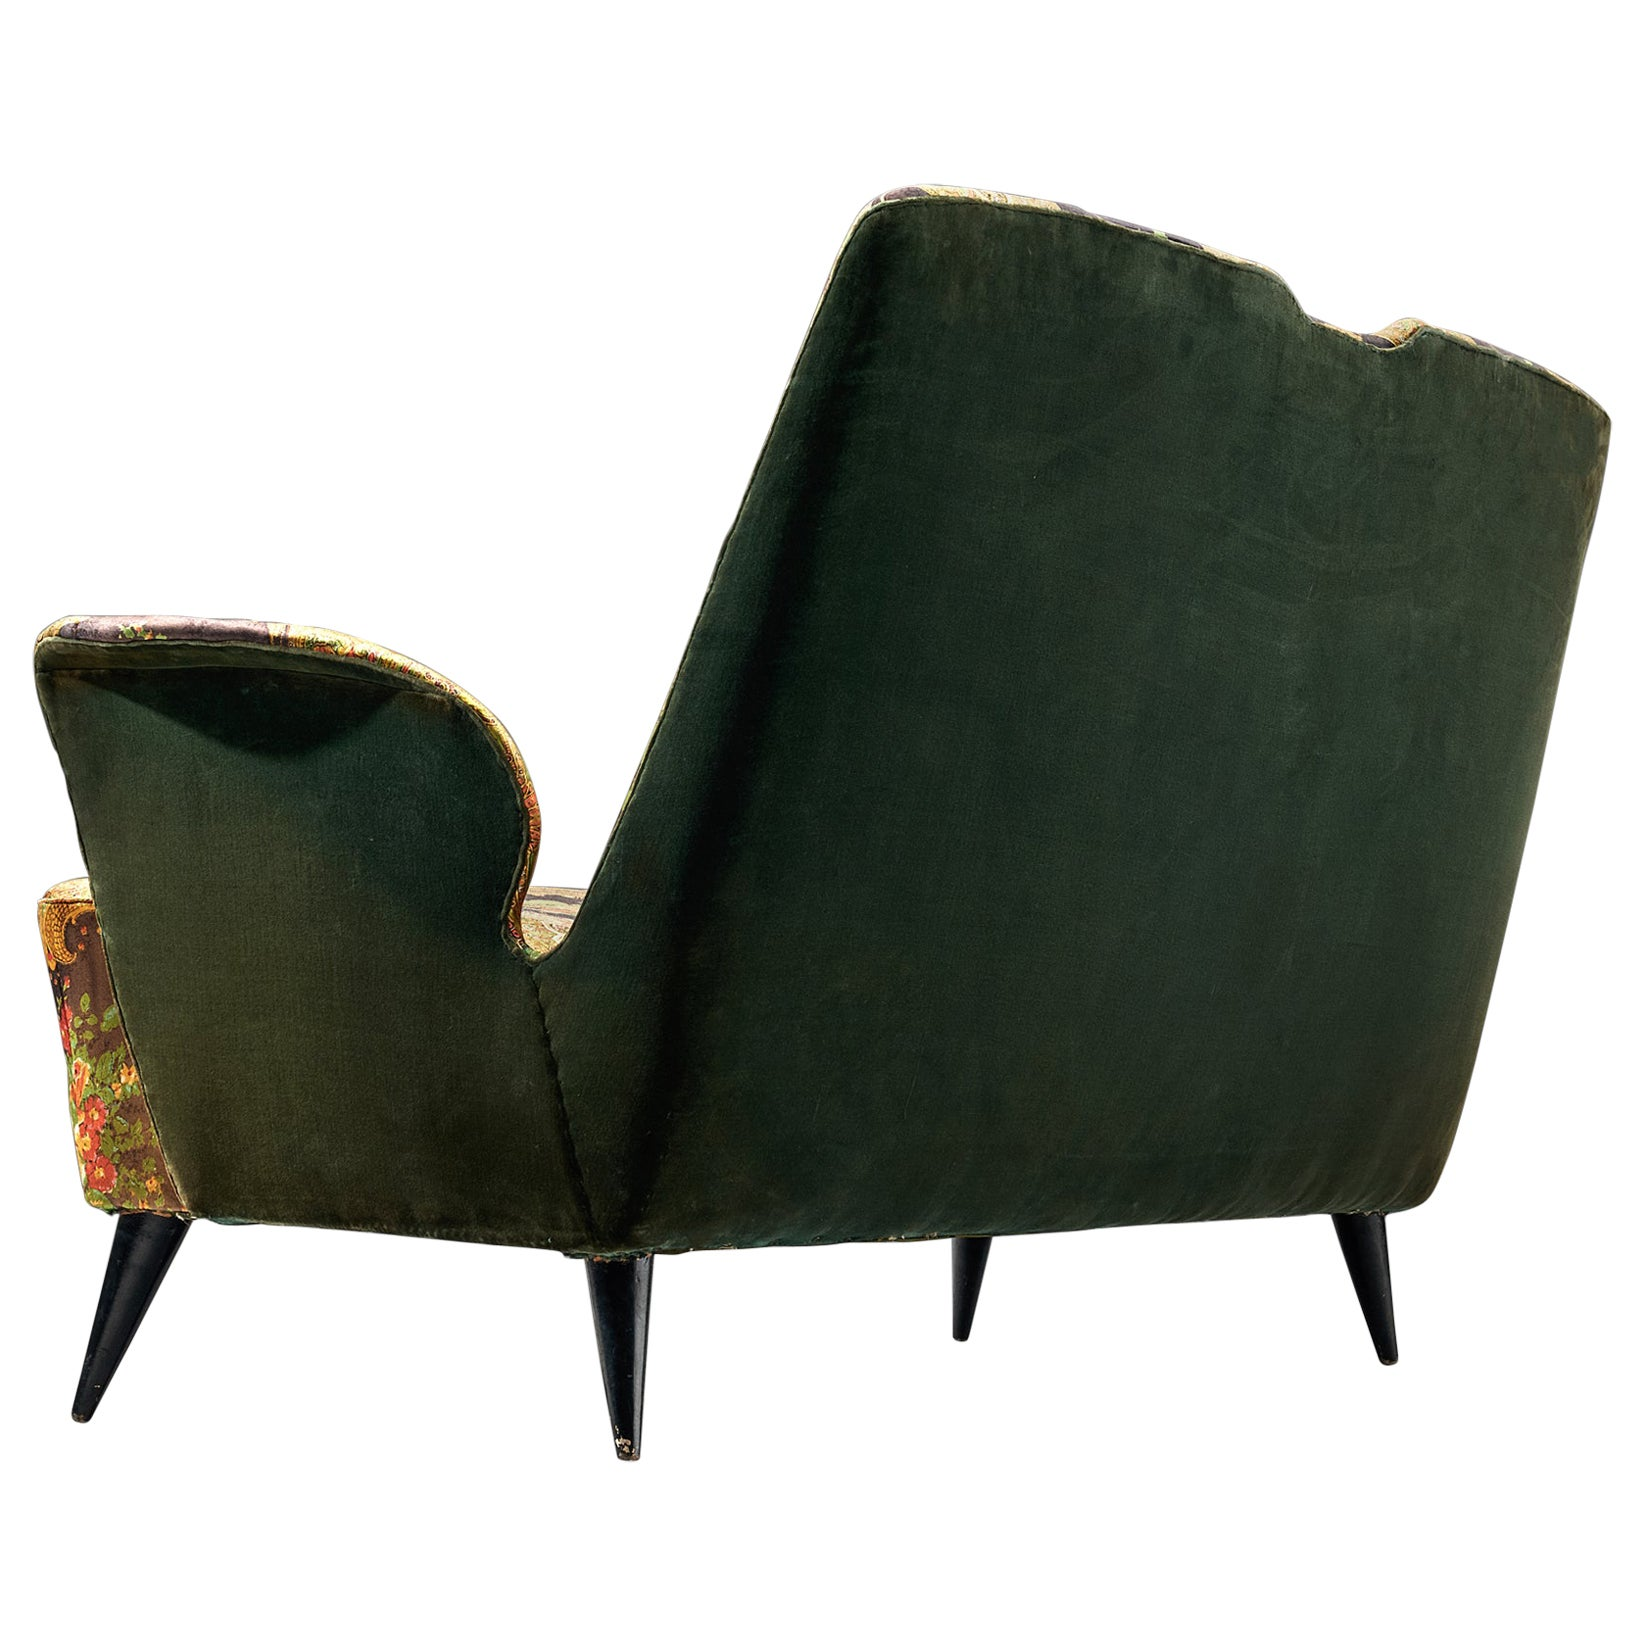 Italian Two-Seat Sofa with Curved Armrests